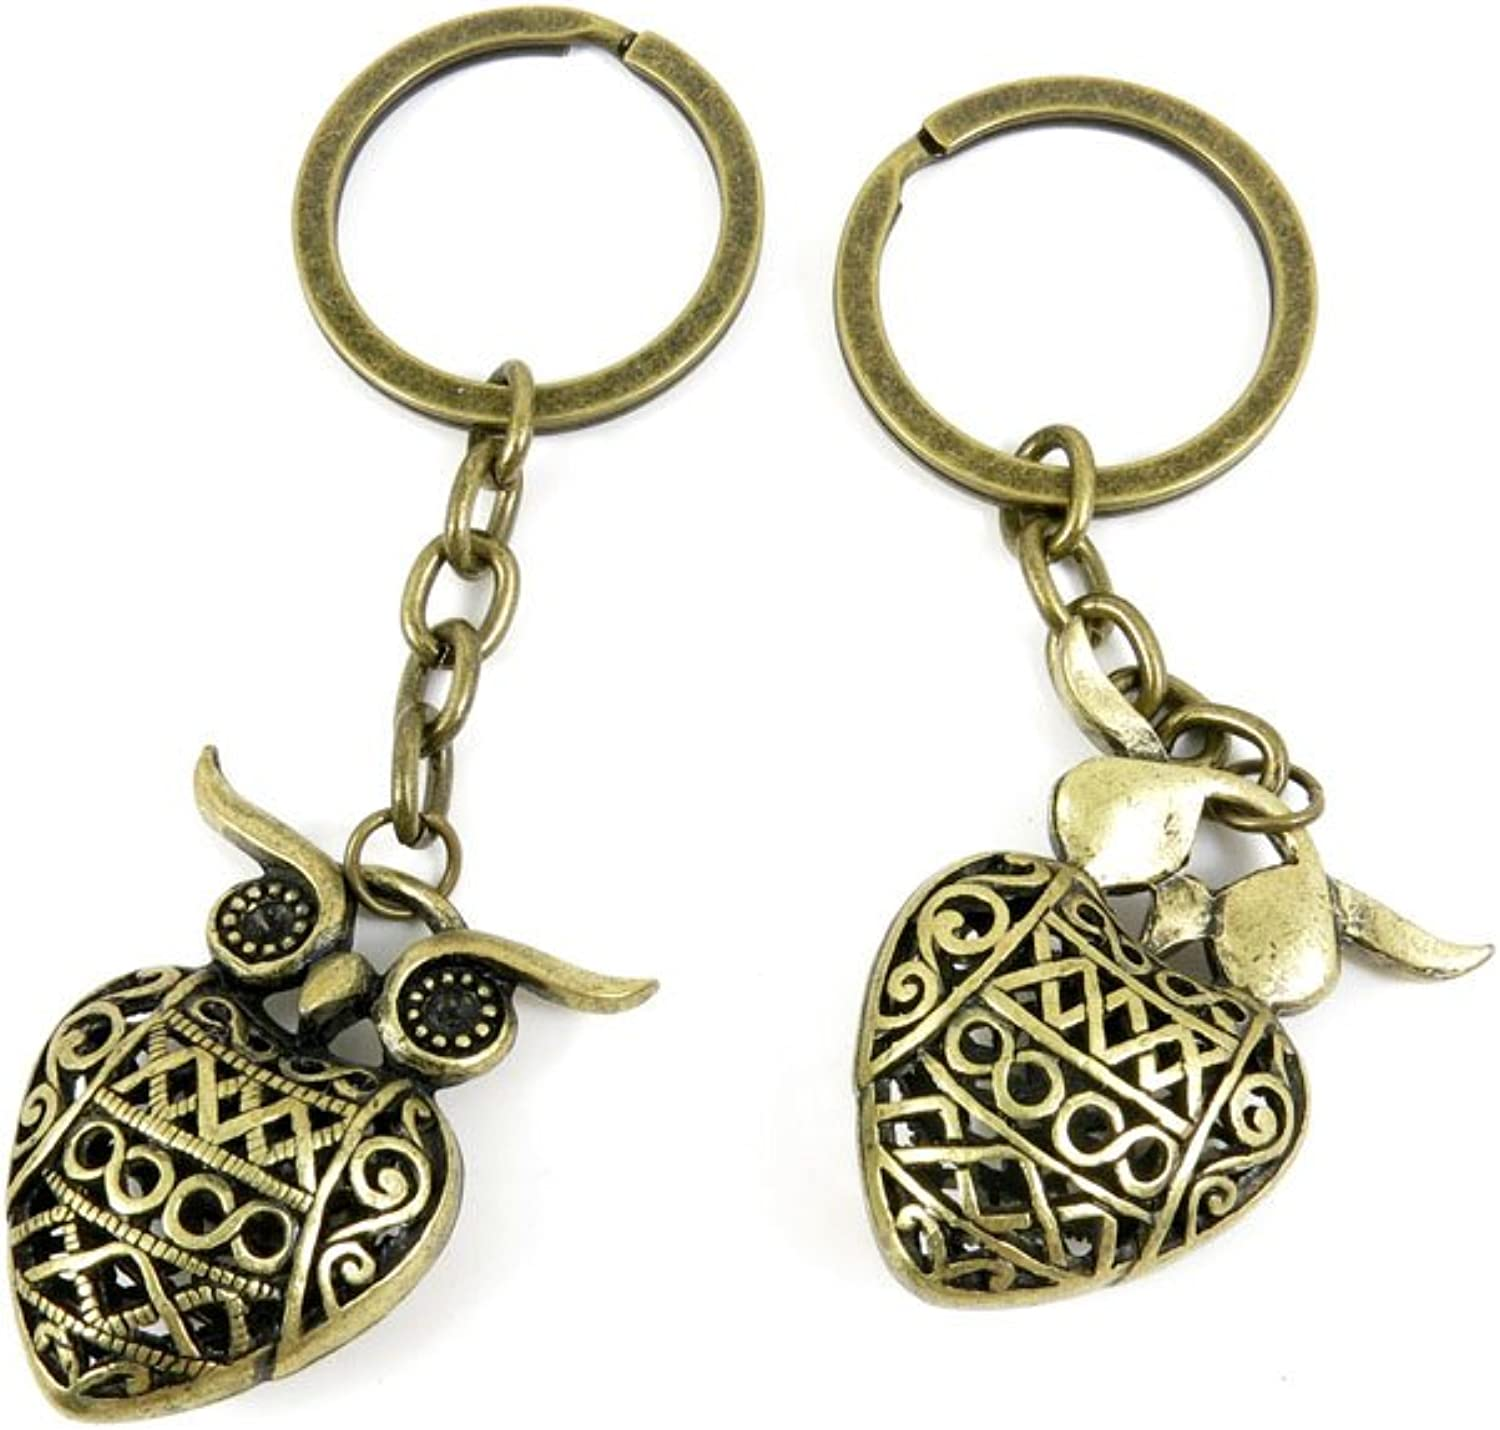 60 Pieces Fashion Jewelry Keyring Keychain Door Car Key Tag Ring Chain Supplier Supply Wholesale Bulk Lots L8XV1 Hollow Owl